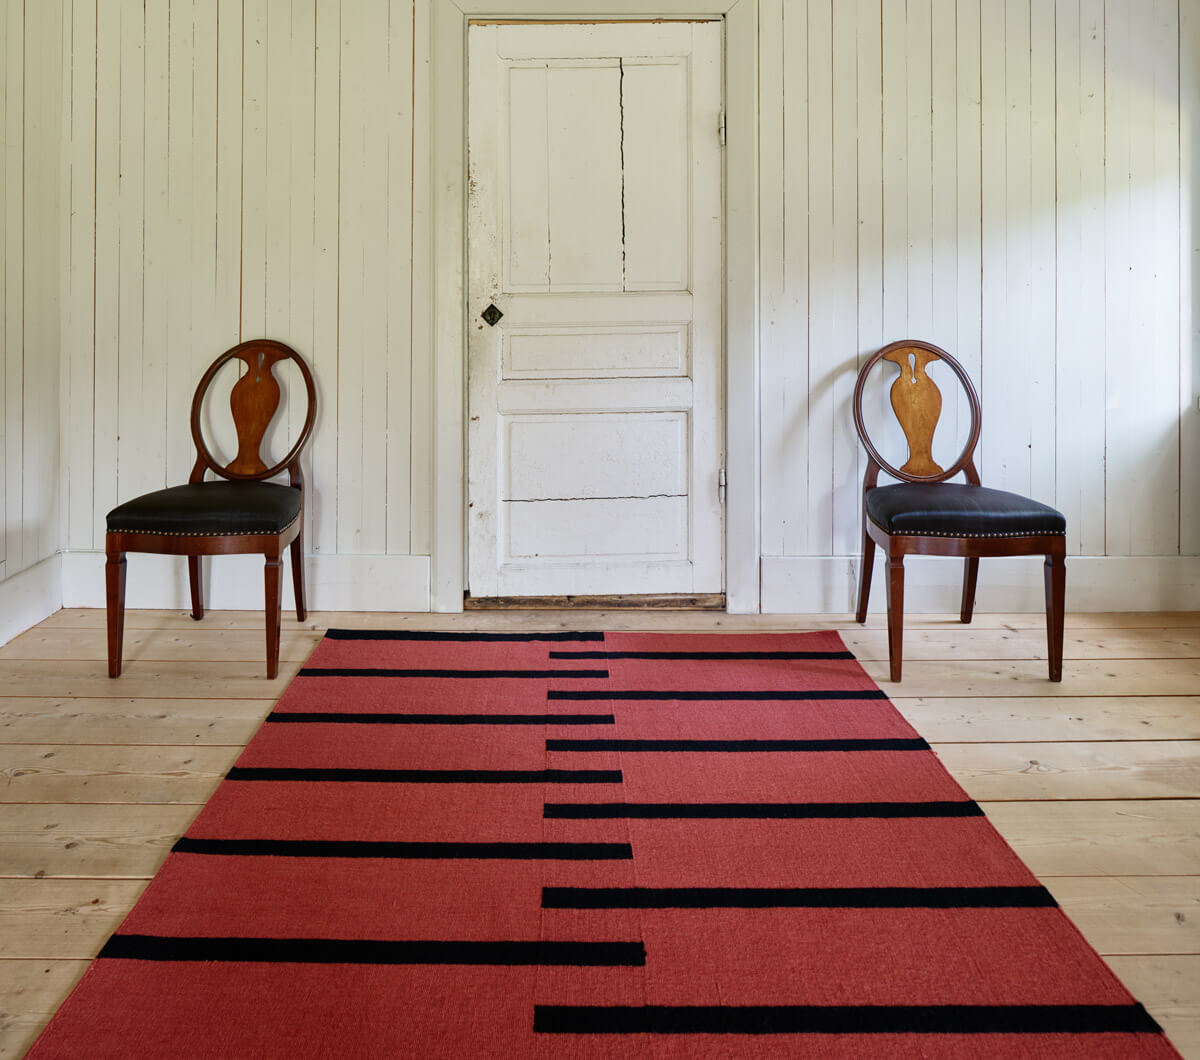 Flatweave Tiger in color red in a rustic, sunny room styled with two wooden chairs.